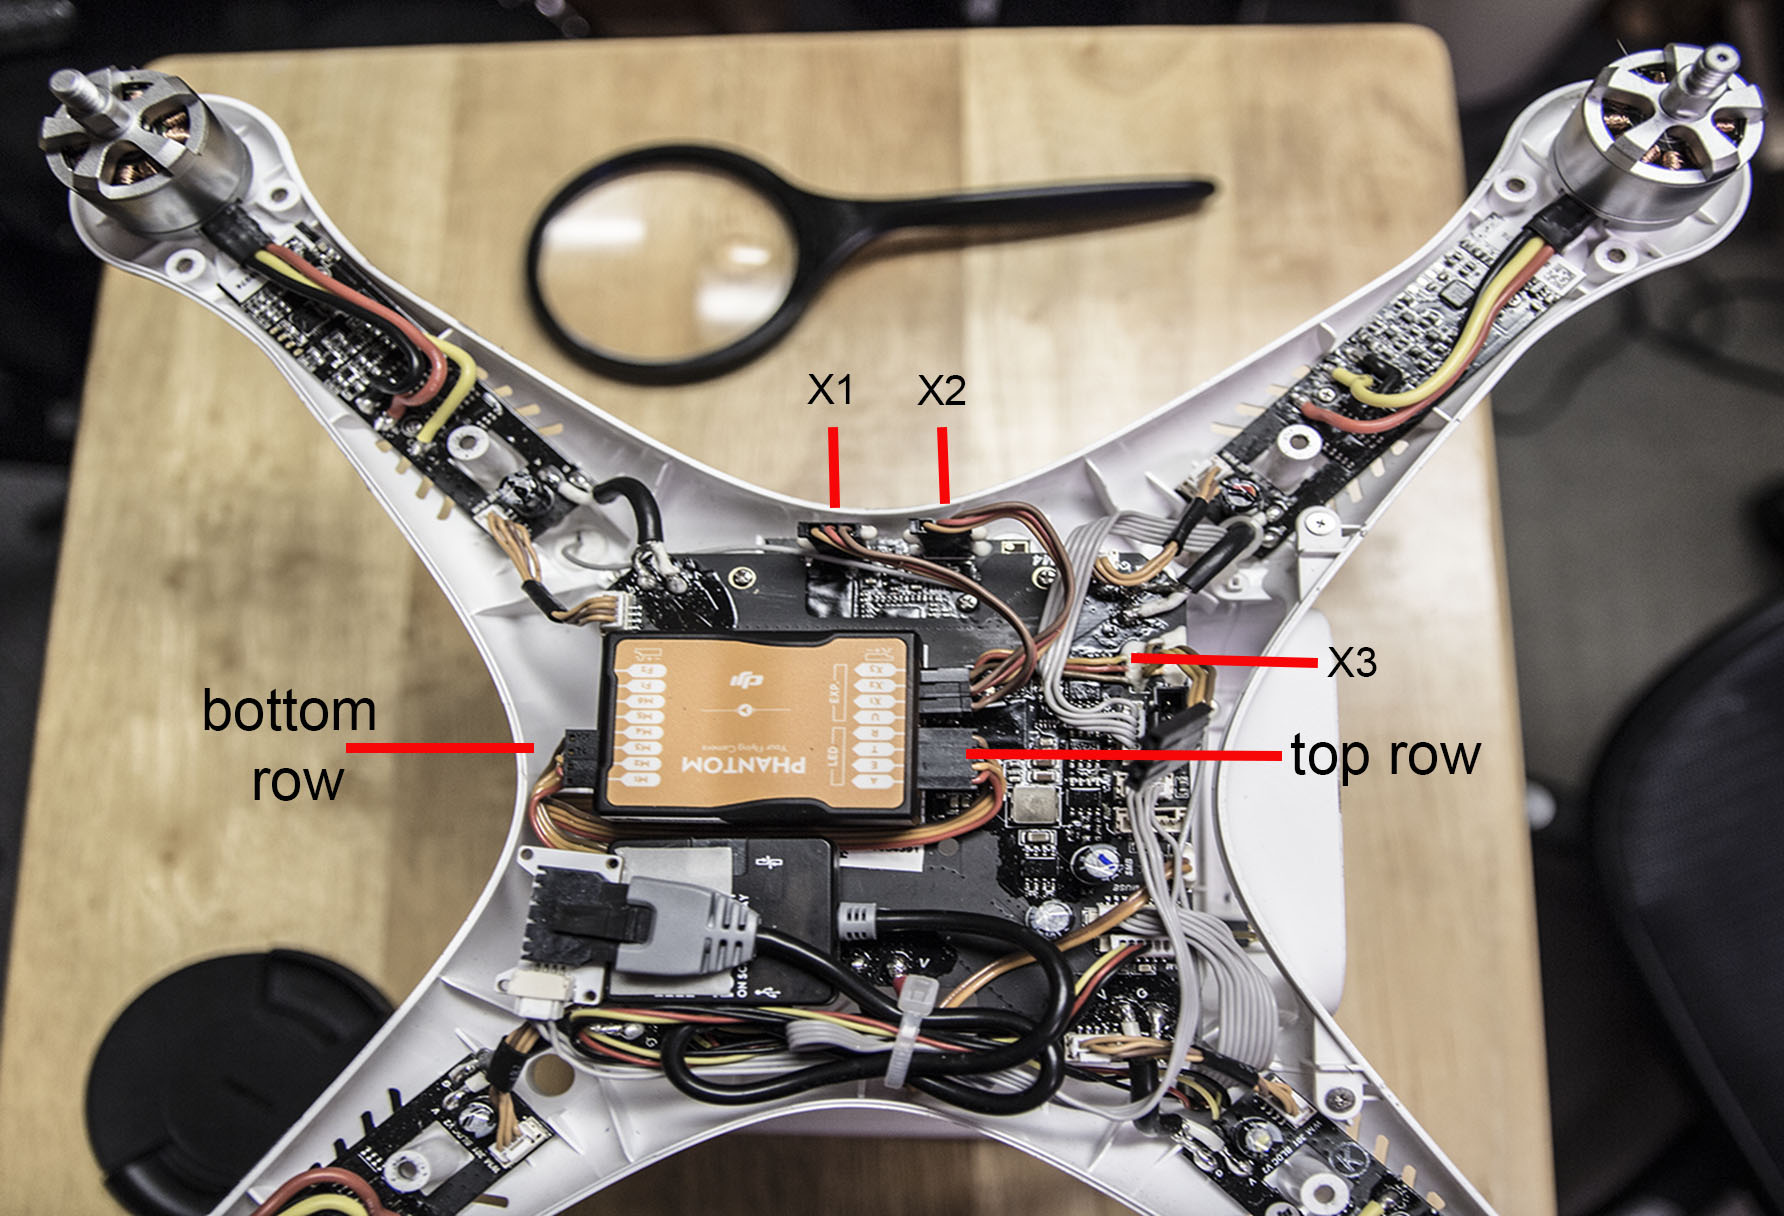 wire up phantom 2 dji phantom drone forum dji phantom 3 standard wiring diagram at soozxer.org